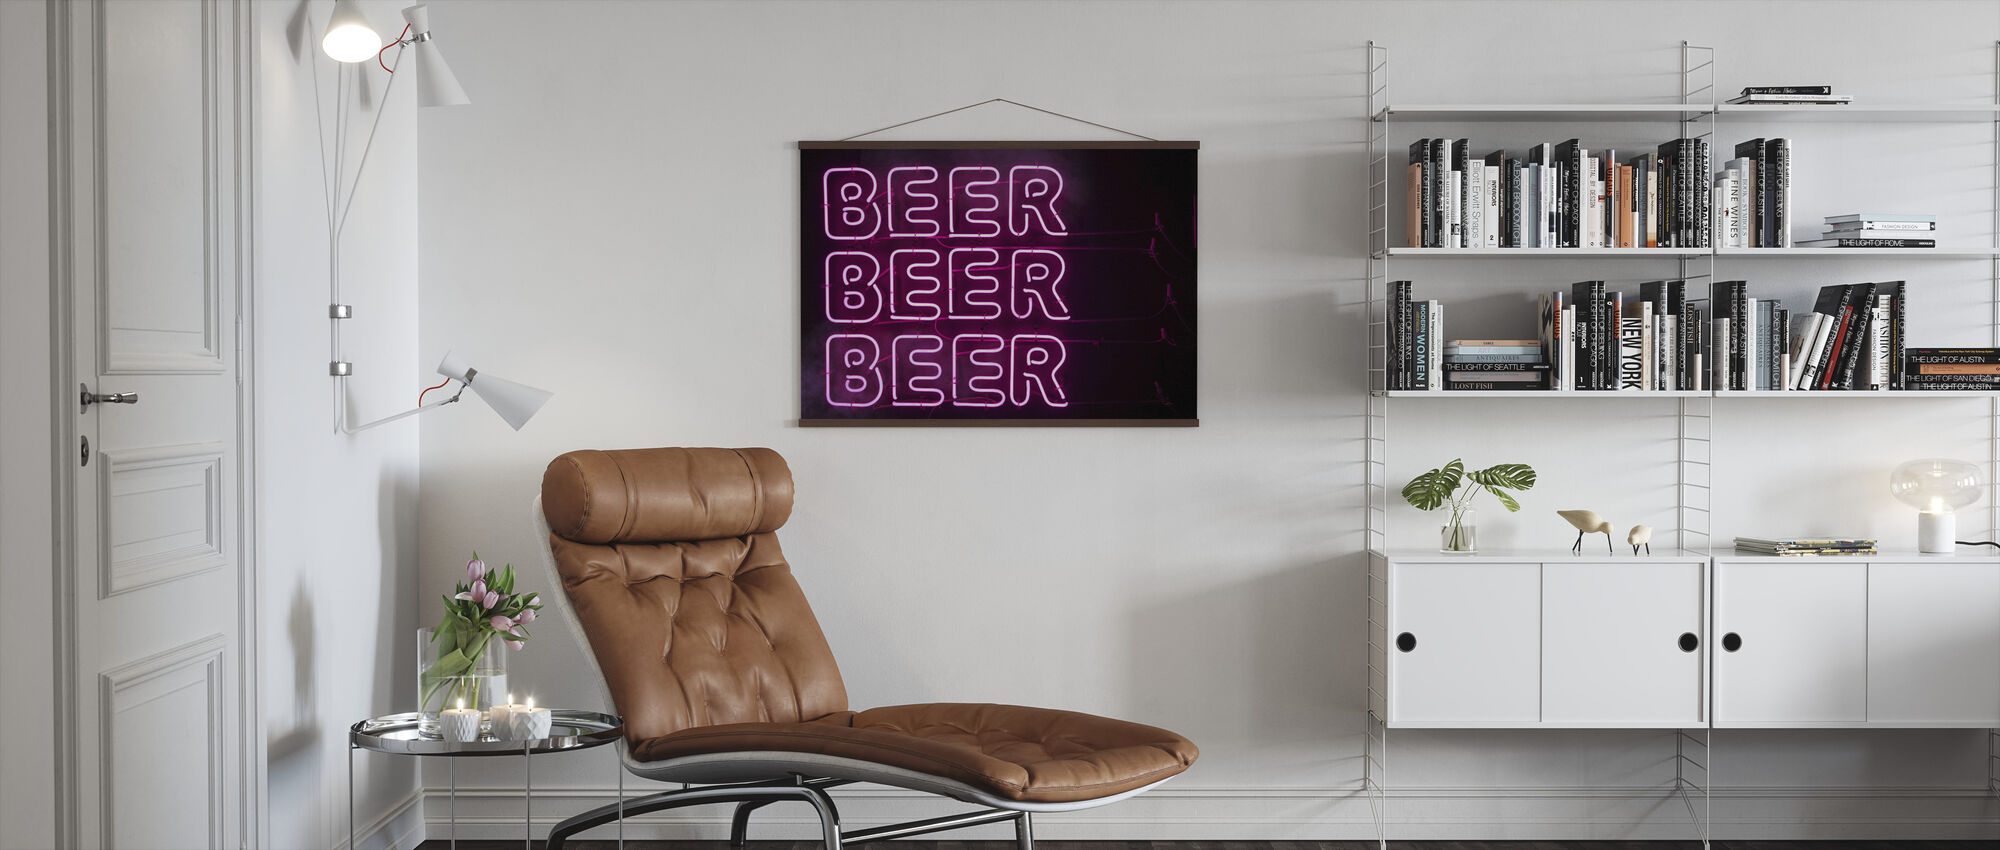 Beer Beer Beer - Poster - Living Room